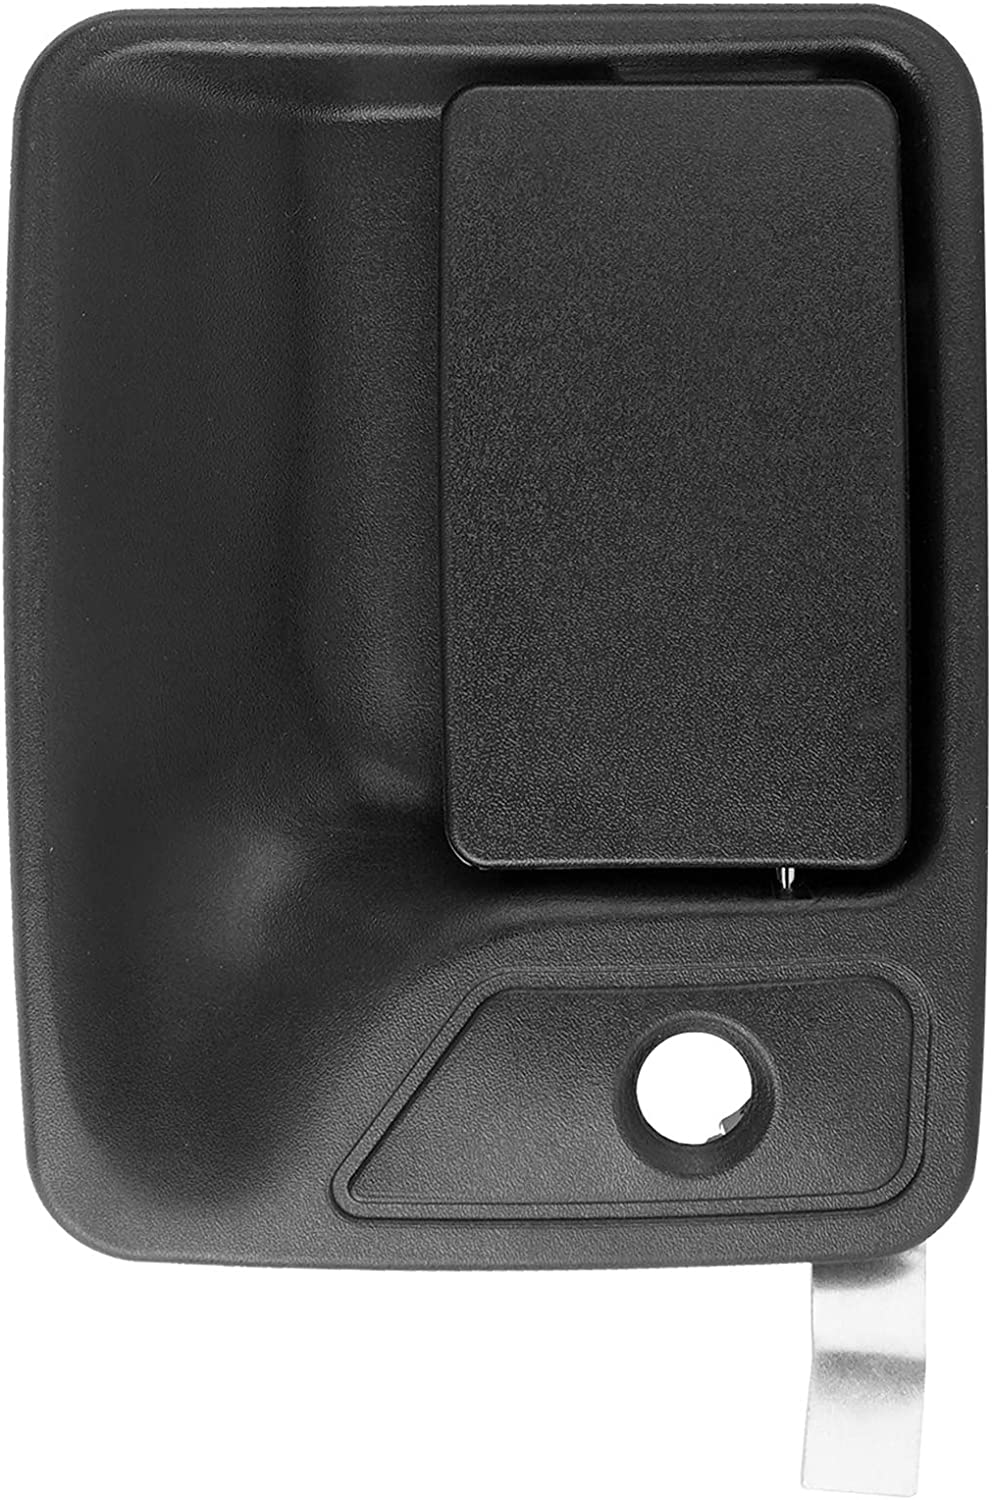 NPAUTO Exterior Door Handle Front Left Driver Side LH Replacement for 1999-2016 F250 F350 F450 F550 Super Duty 2000-2005 Ford Excursion 00-13 Ford F750 79306 00-15 Ford F650